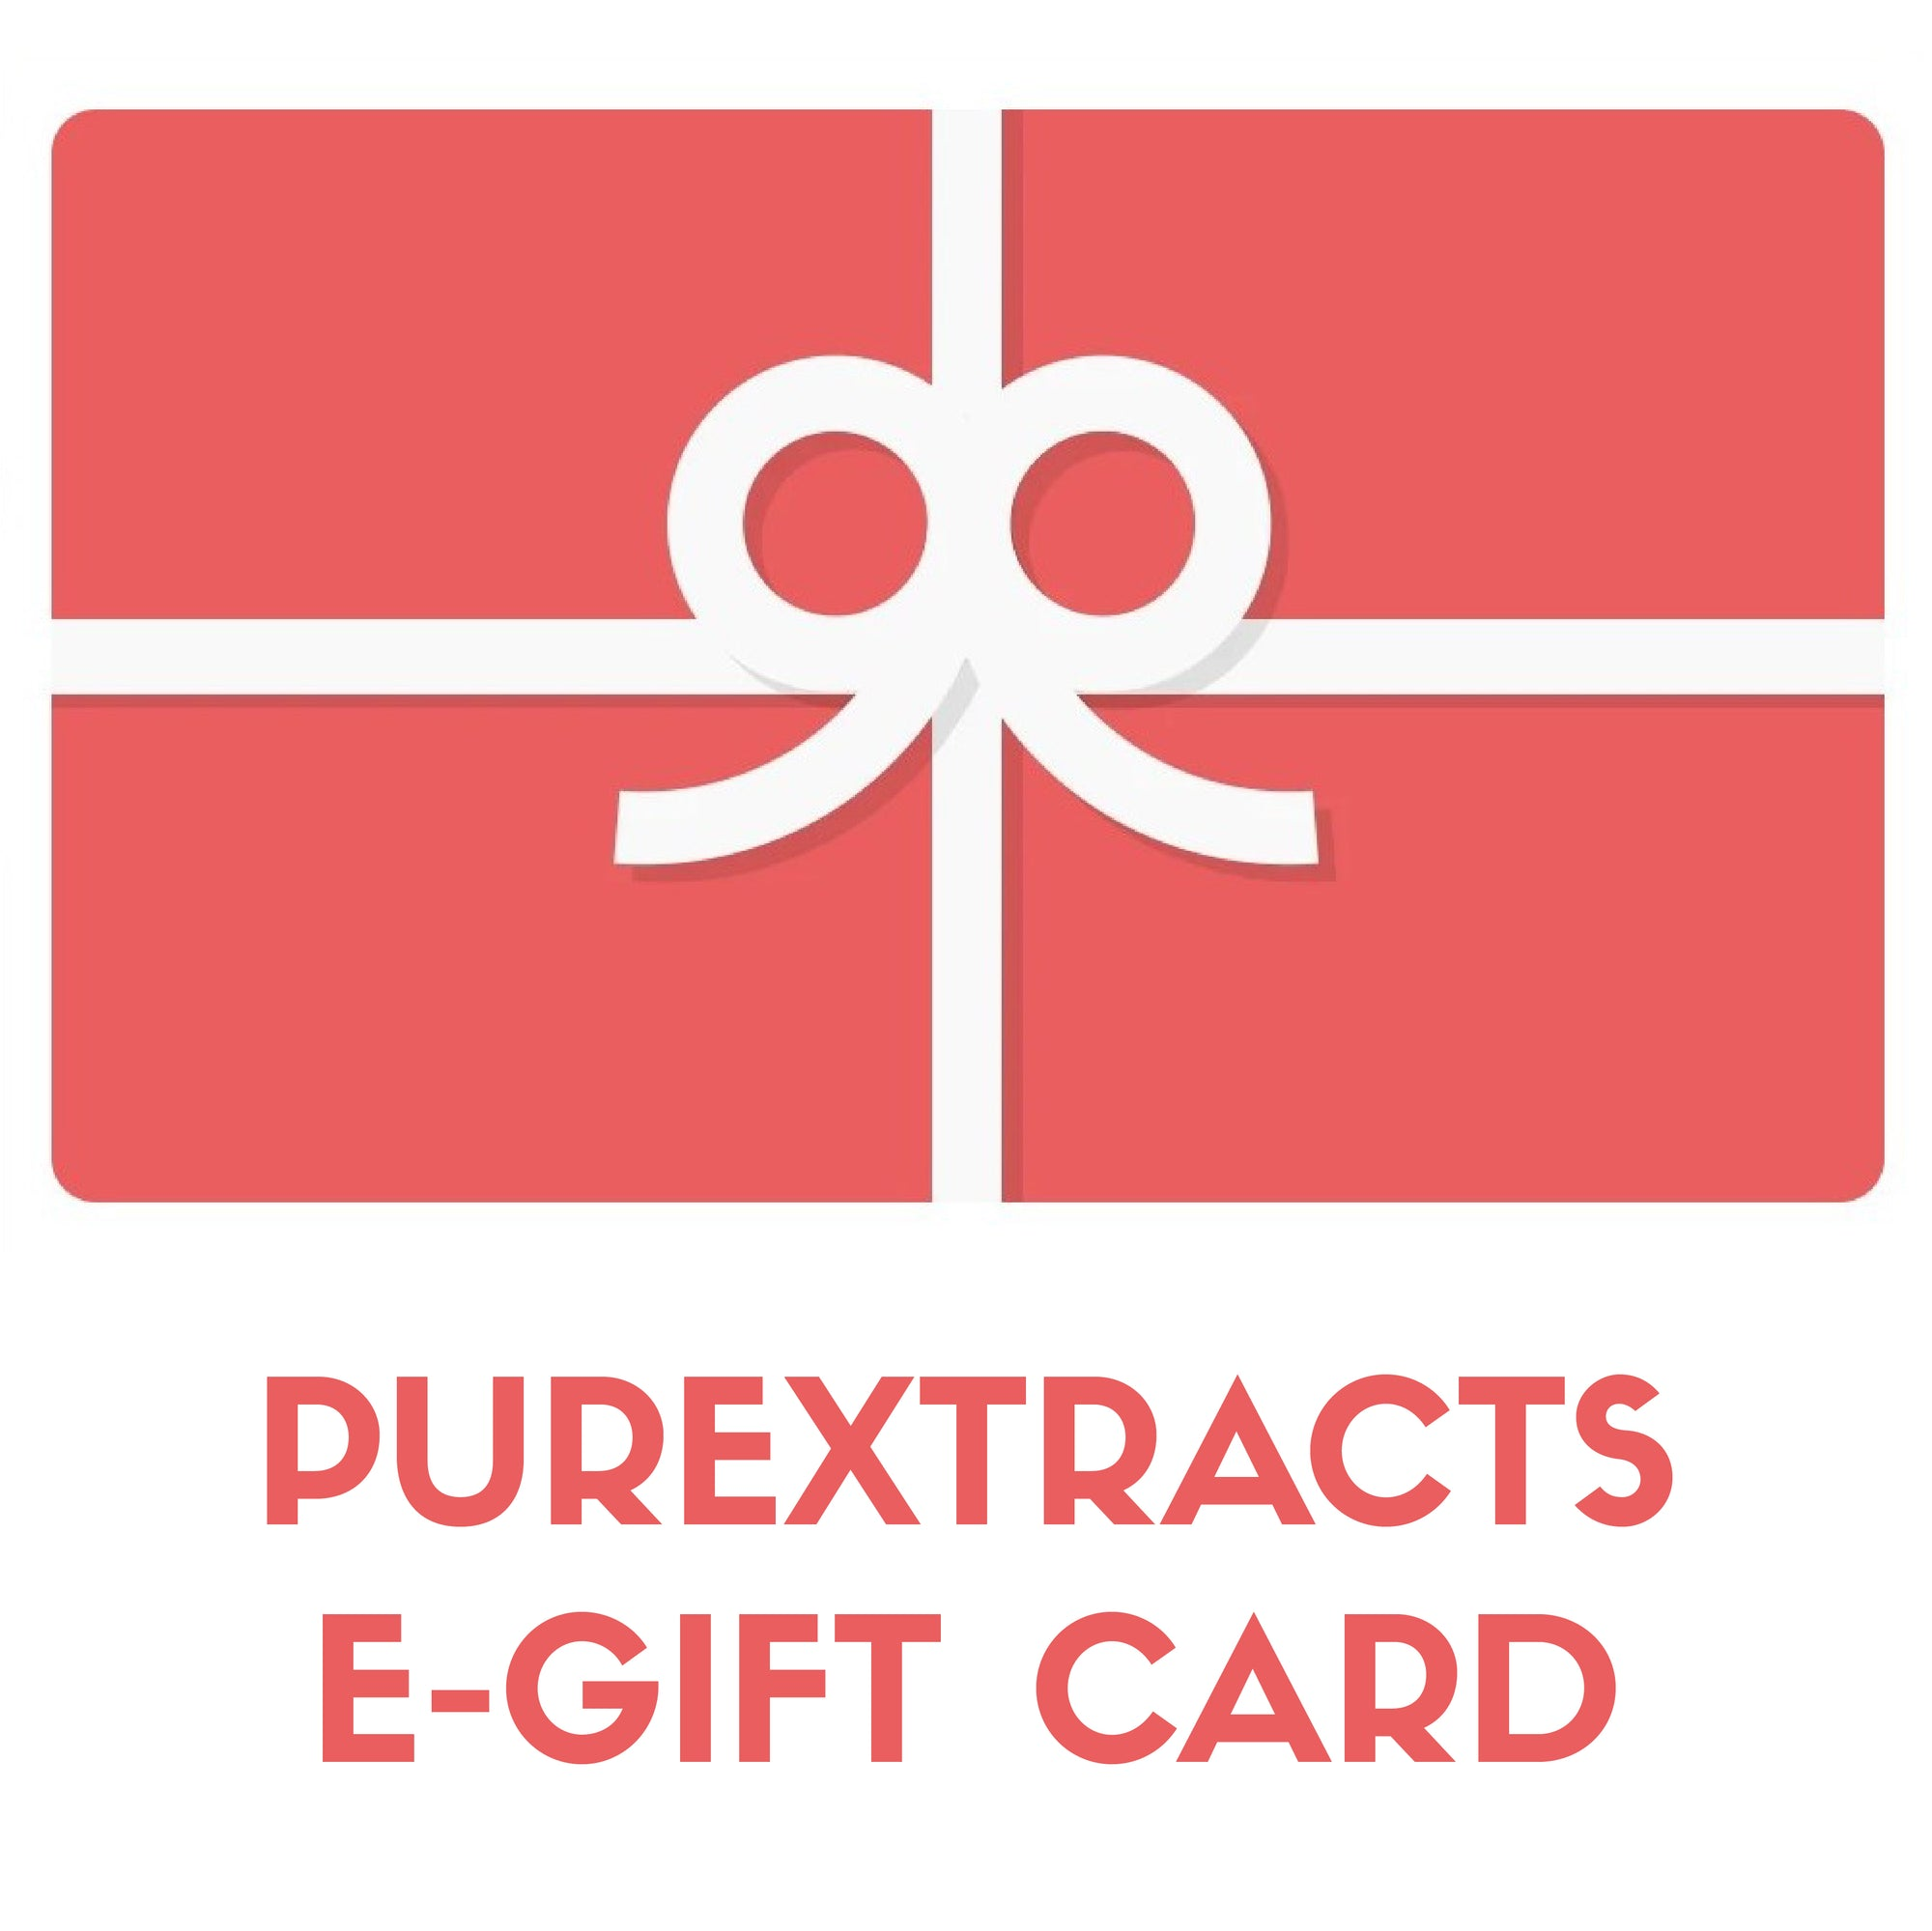 PureXtracts e-gift cards